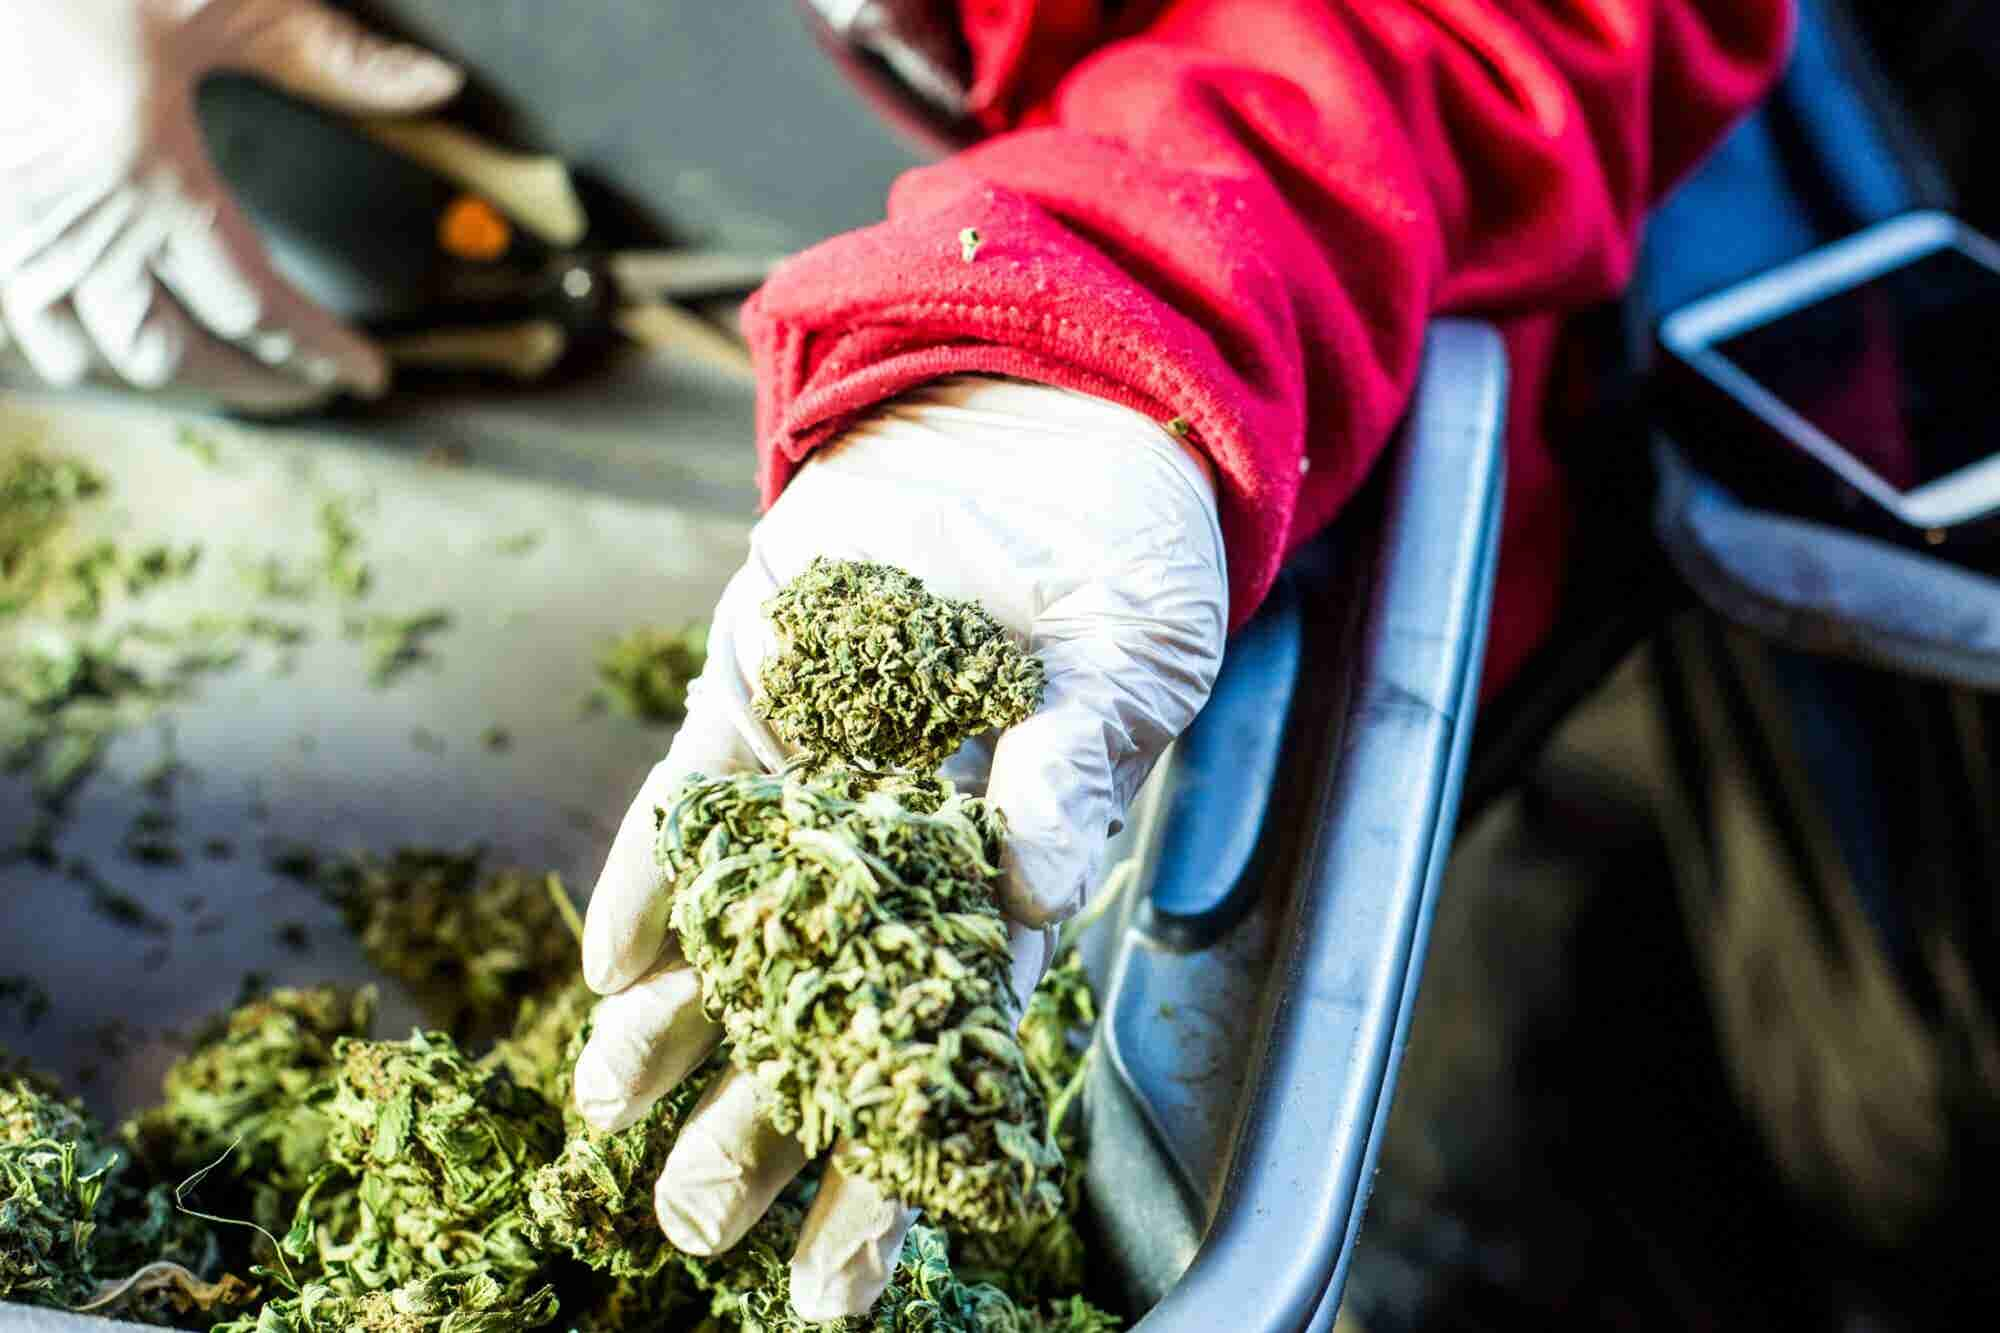 Licensing Snafu Could Cost California Cannabis Growers Thousands in Lost Revenue, Possible Shutdowns